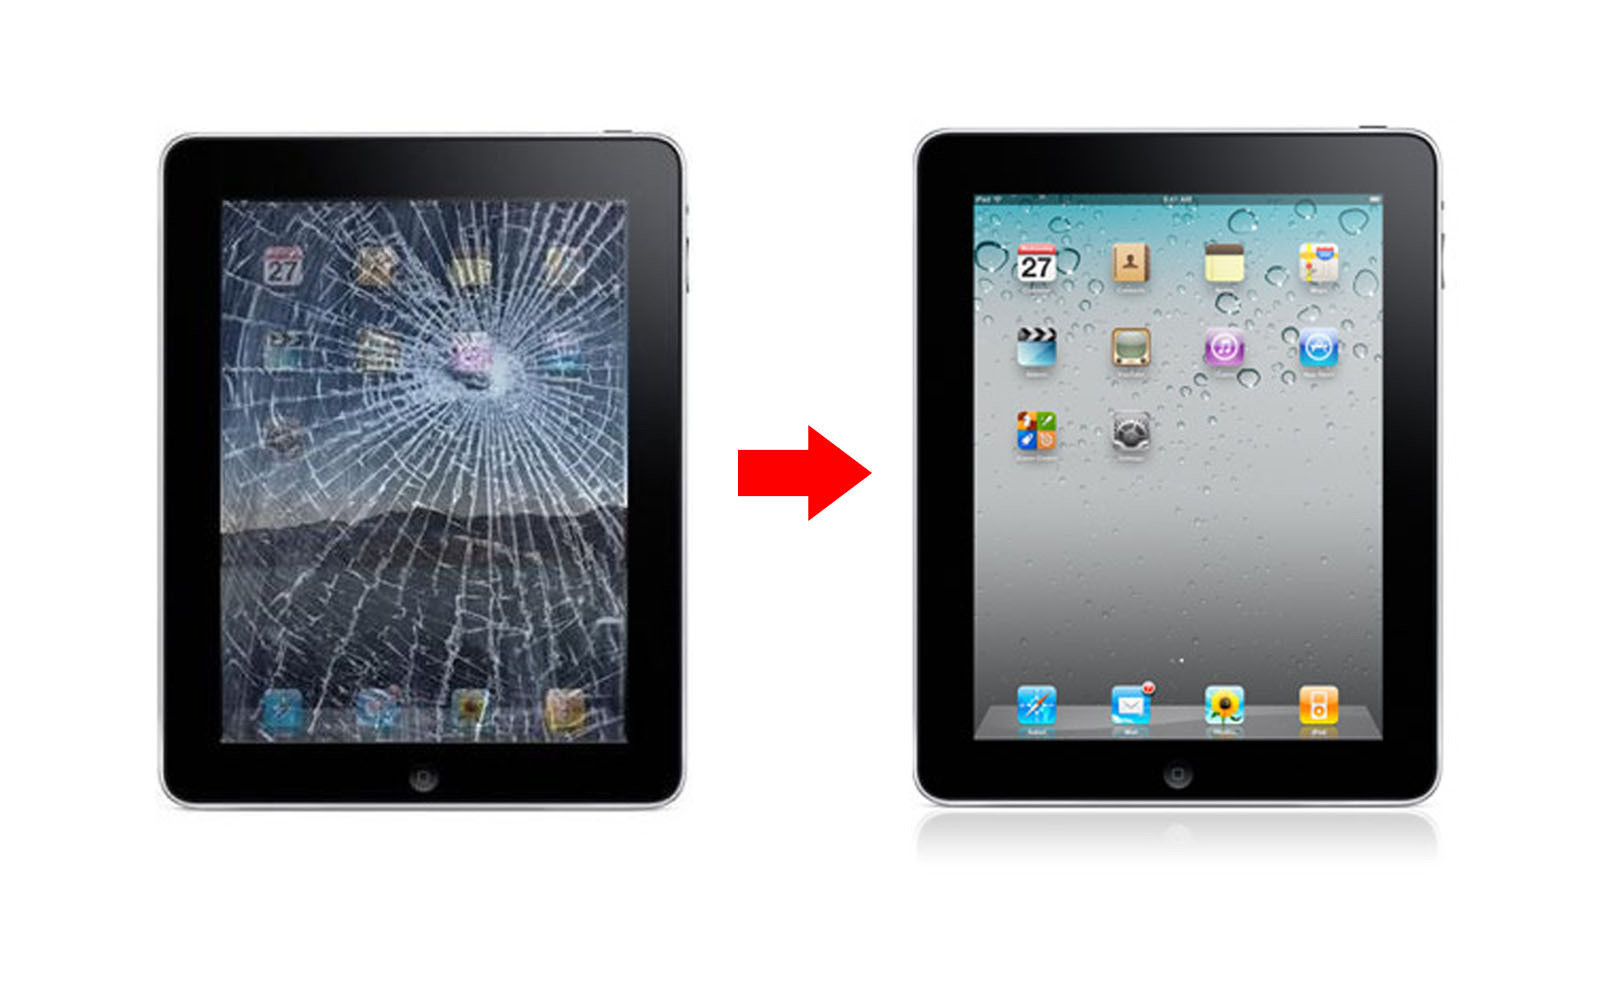 Accidents happen. Sometimes an iPad screen can get cracked